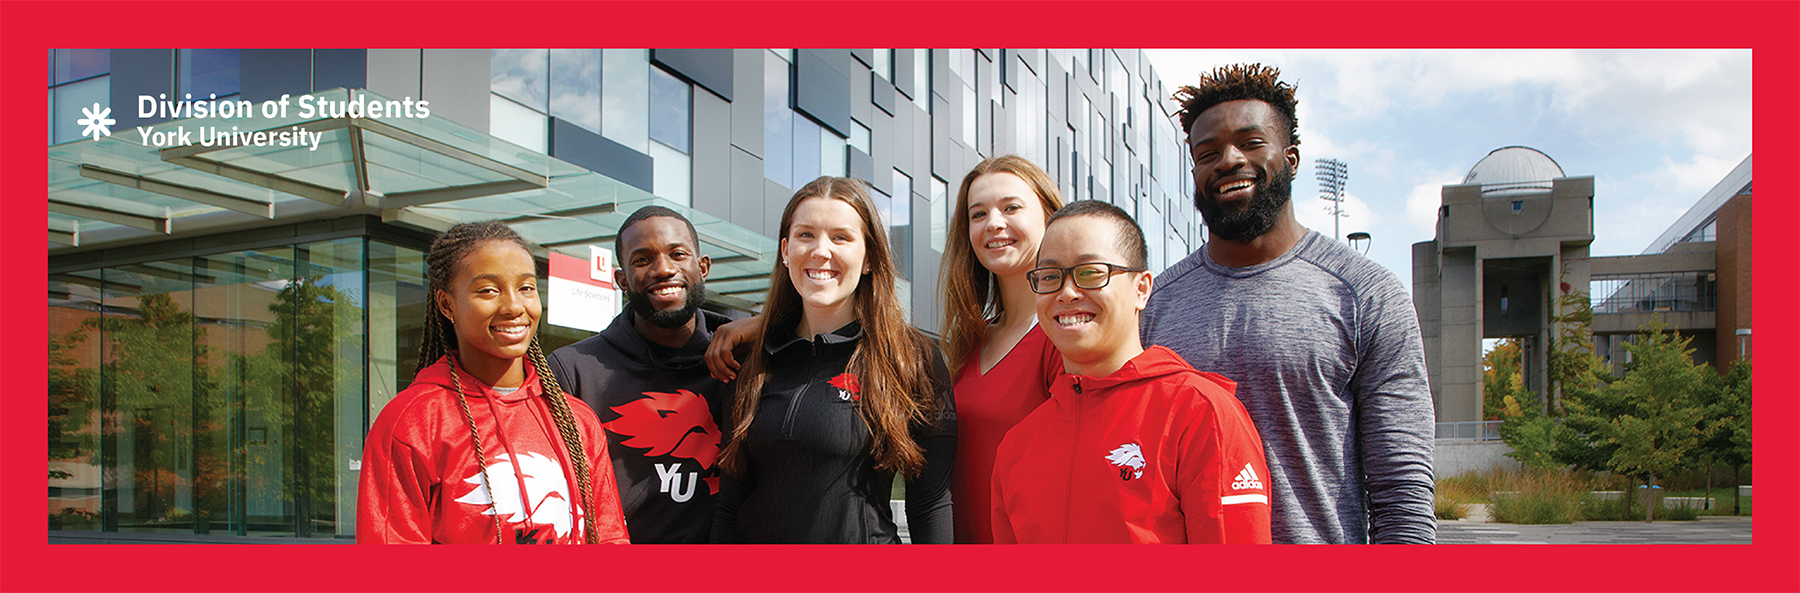 Image shows a group of students standing in front of the Life Sciences Building located on the Keele Campus